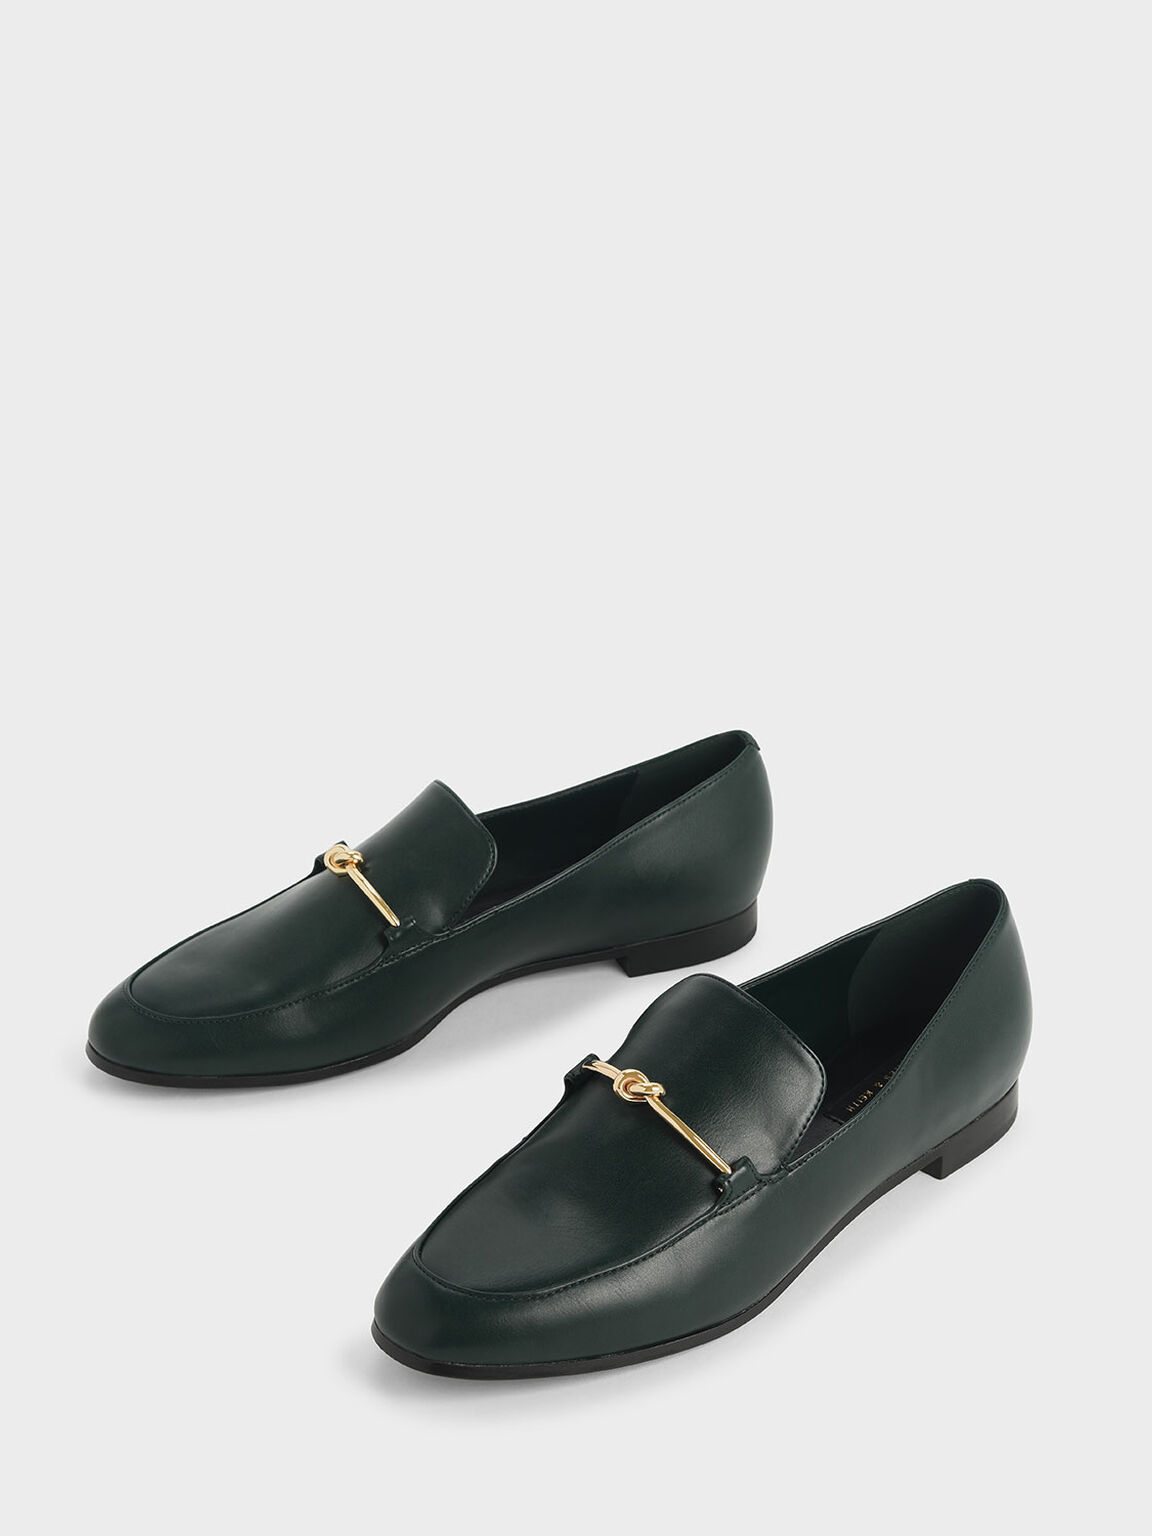 Metallic Knot Accent Loafers, Green, hi-res